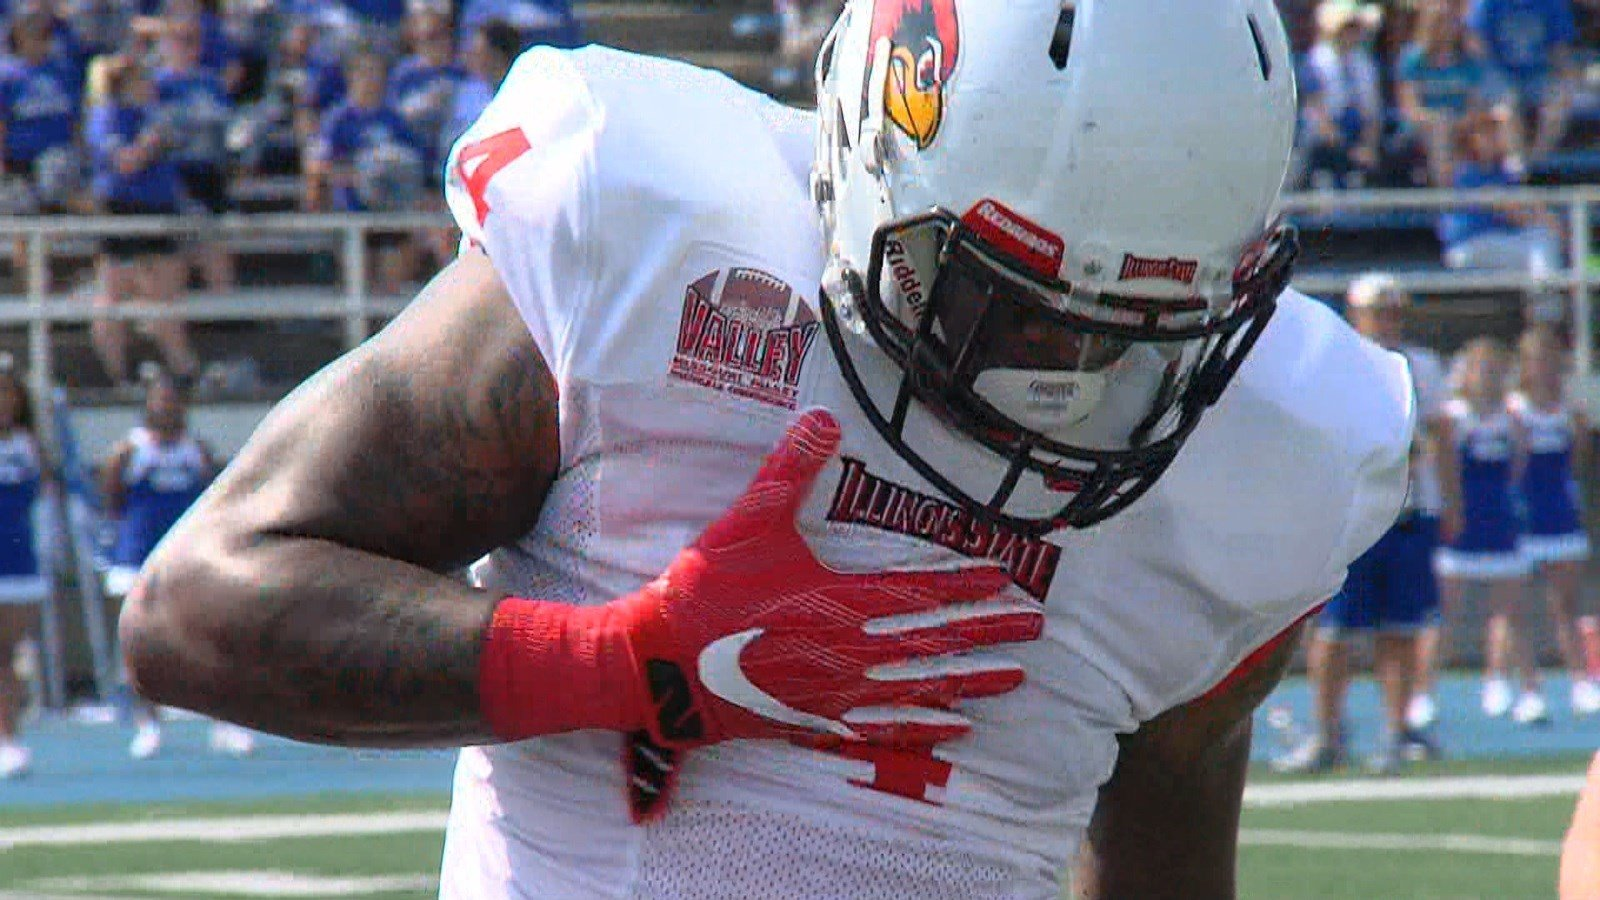 Illinois State linebacker Tyree Horton recorded 11 tackles, 2 sacks and 3.5 tackles for a loss in his first full game since transferring from TCU.